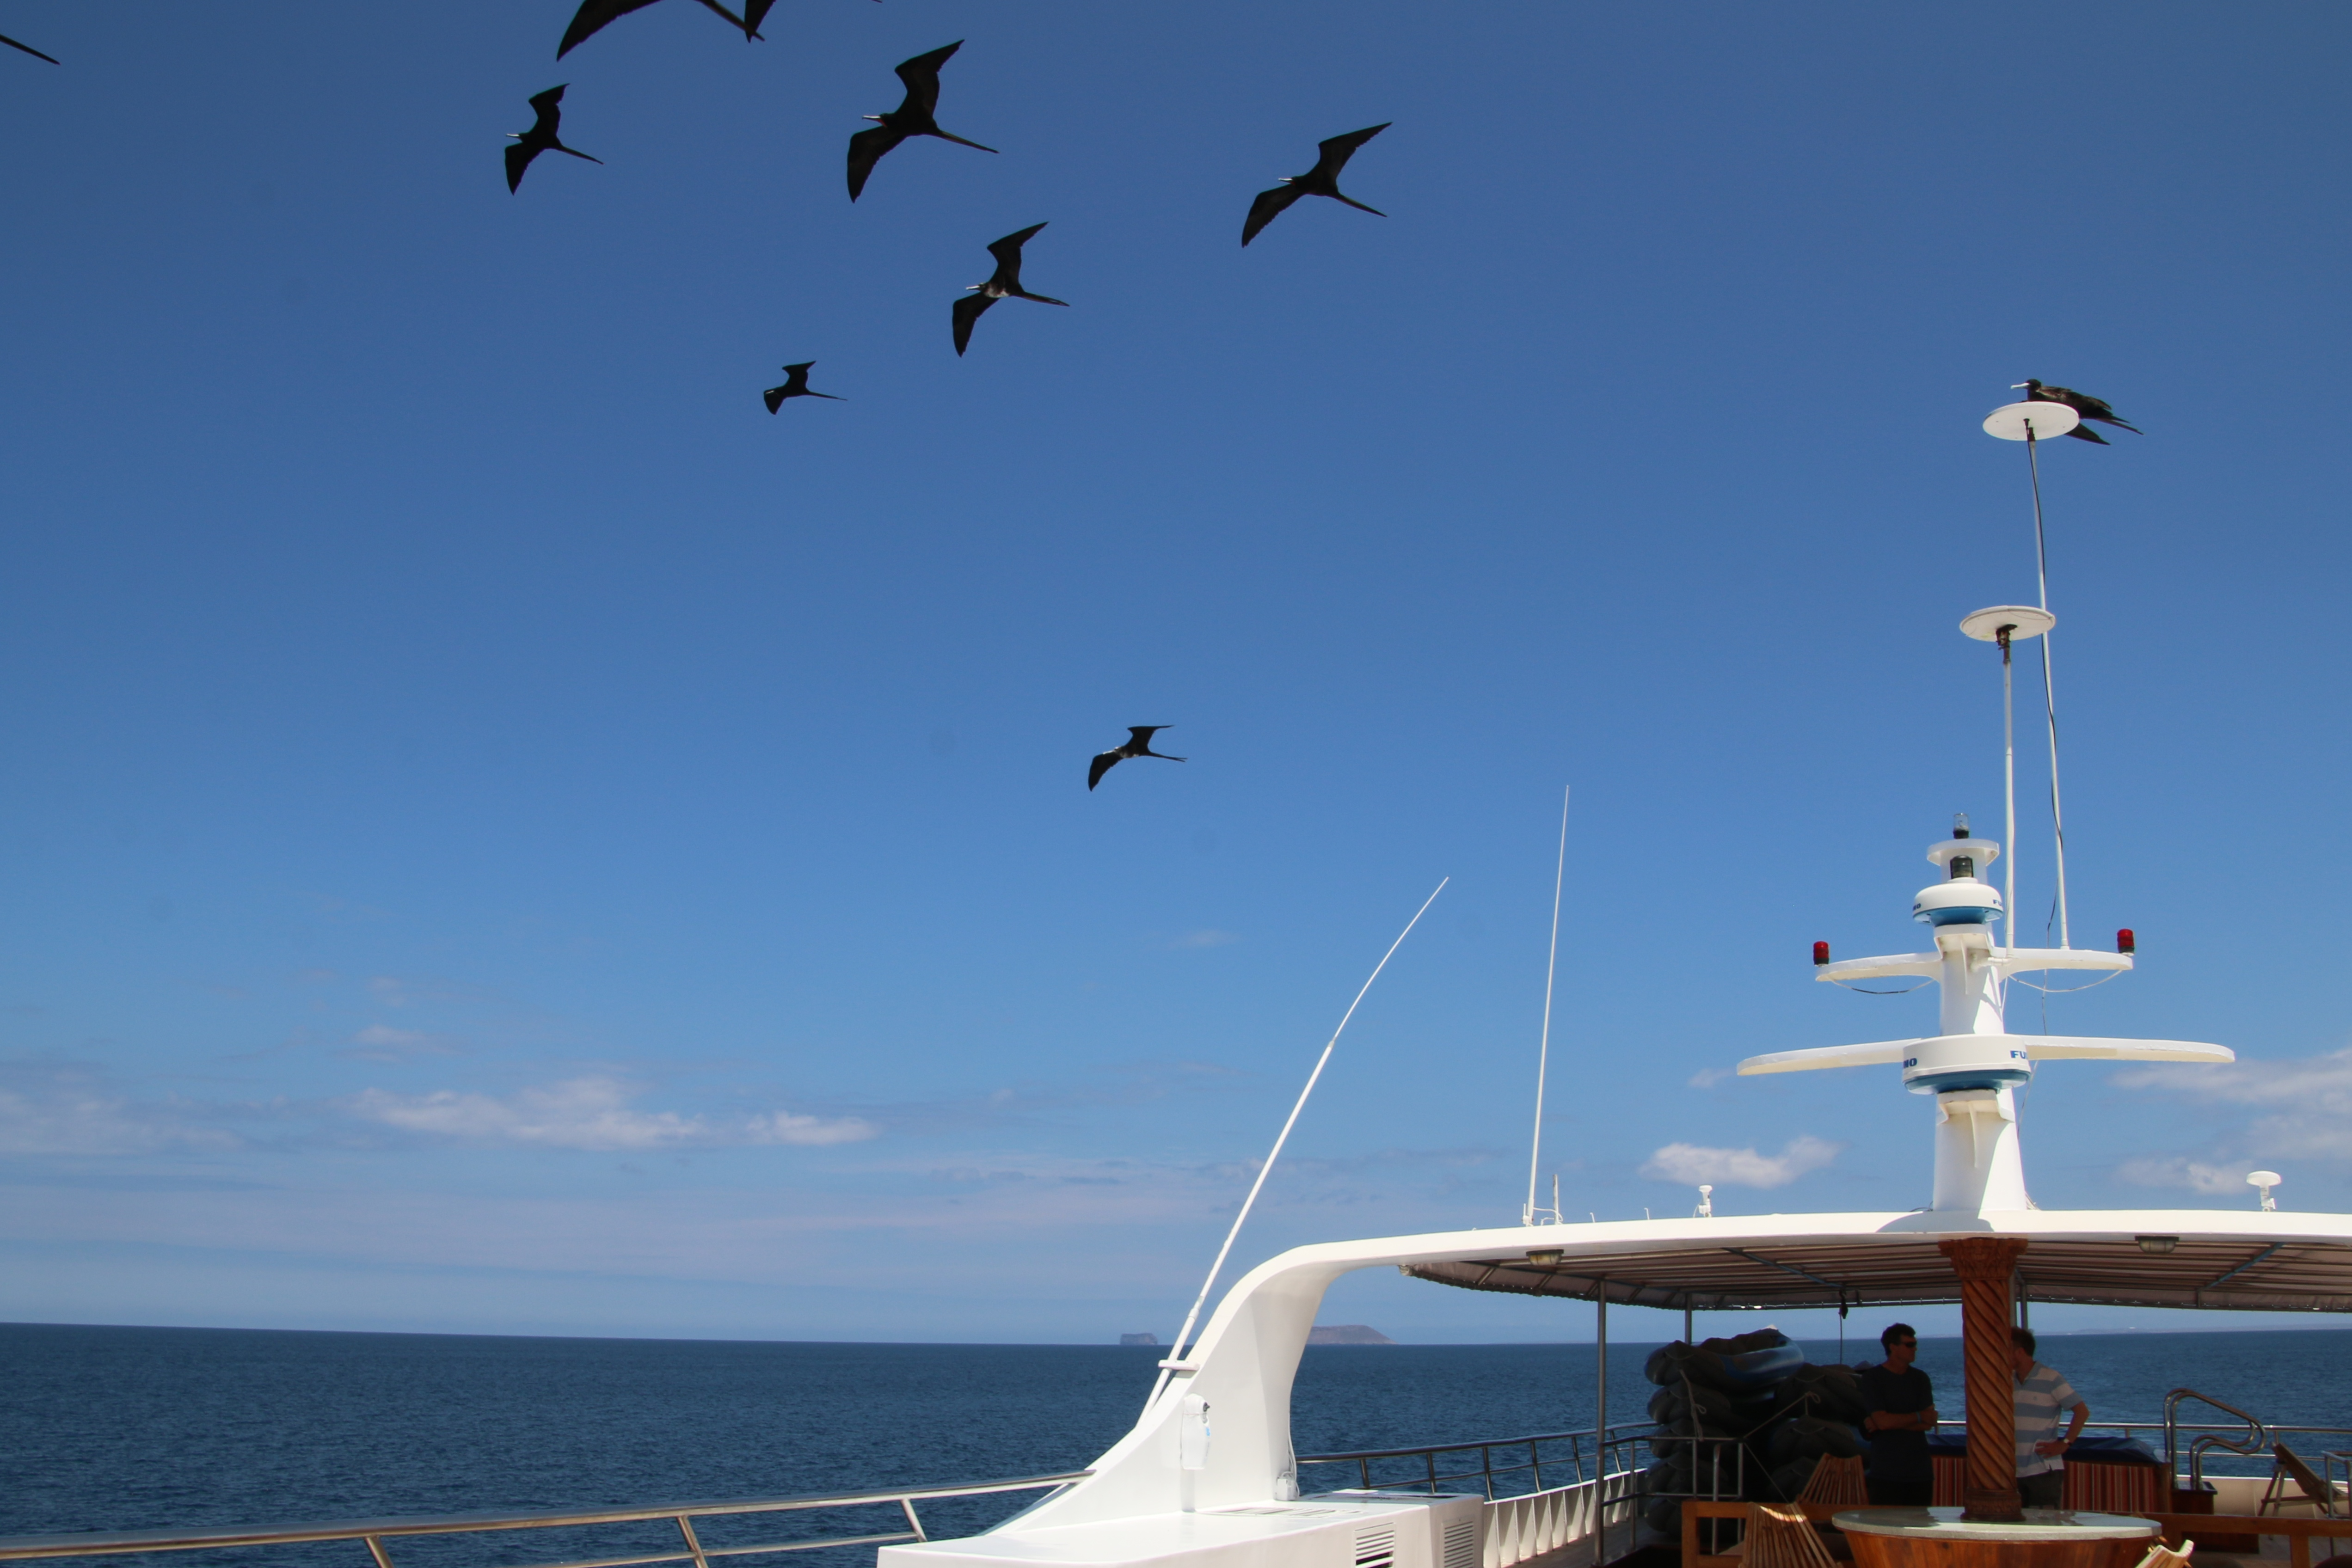 GUAYAQUIL TO GUAYAQUIL - The Galapagos Islands